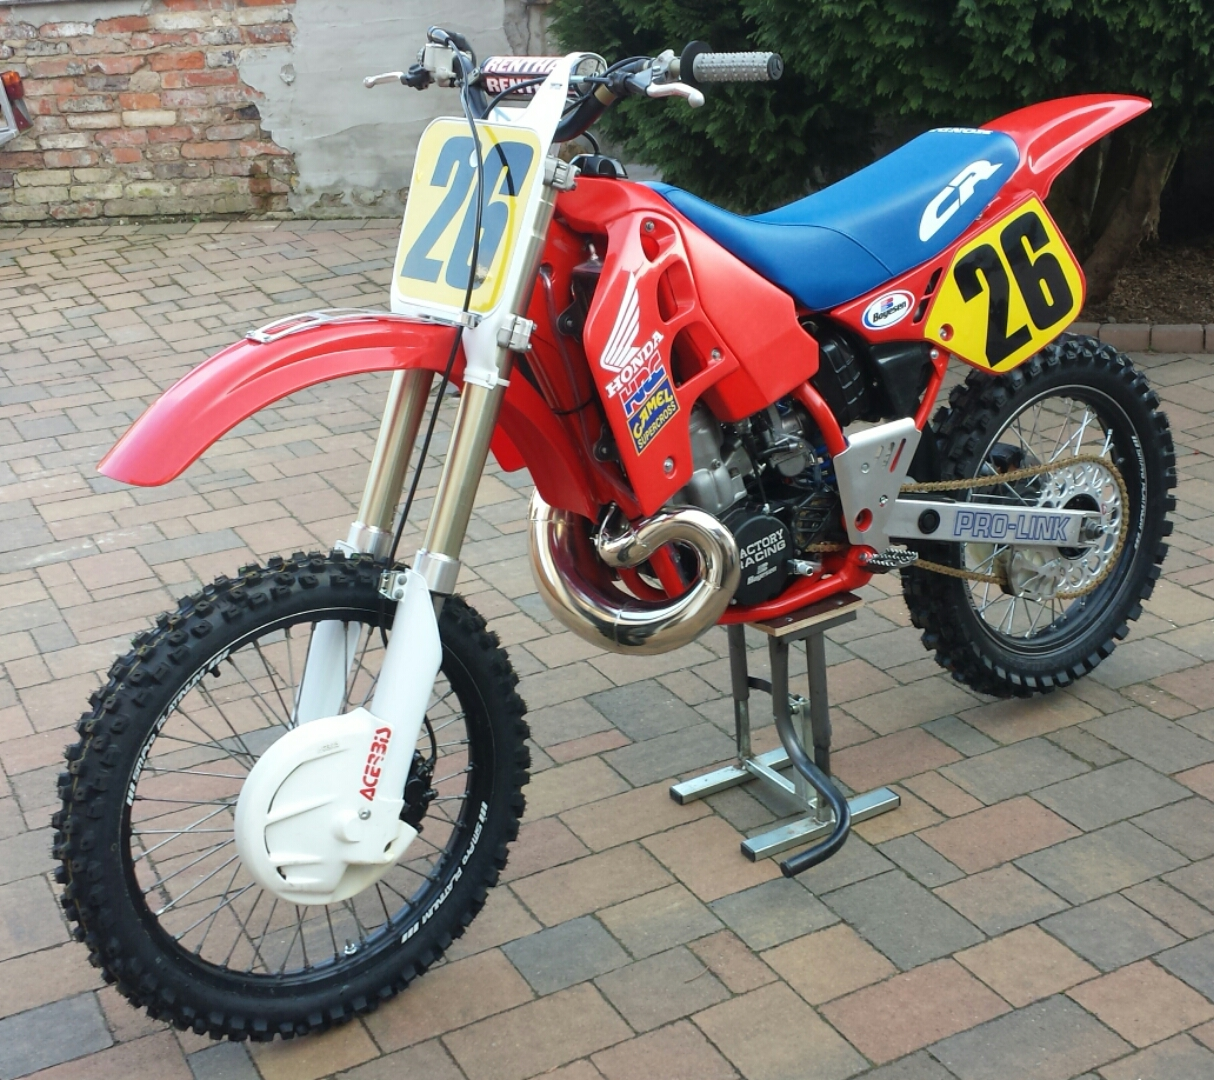 1989 honda cr 500 robin 48 39 s bike check vital mx. Black Bedroom Furniture Sets. Home Design Ideas